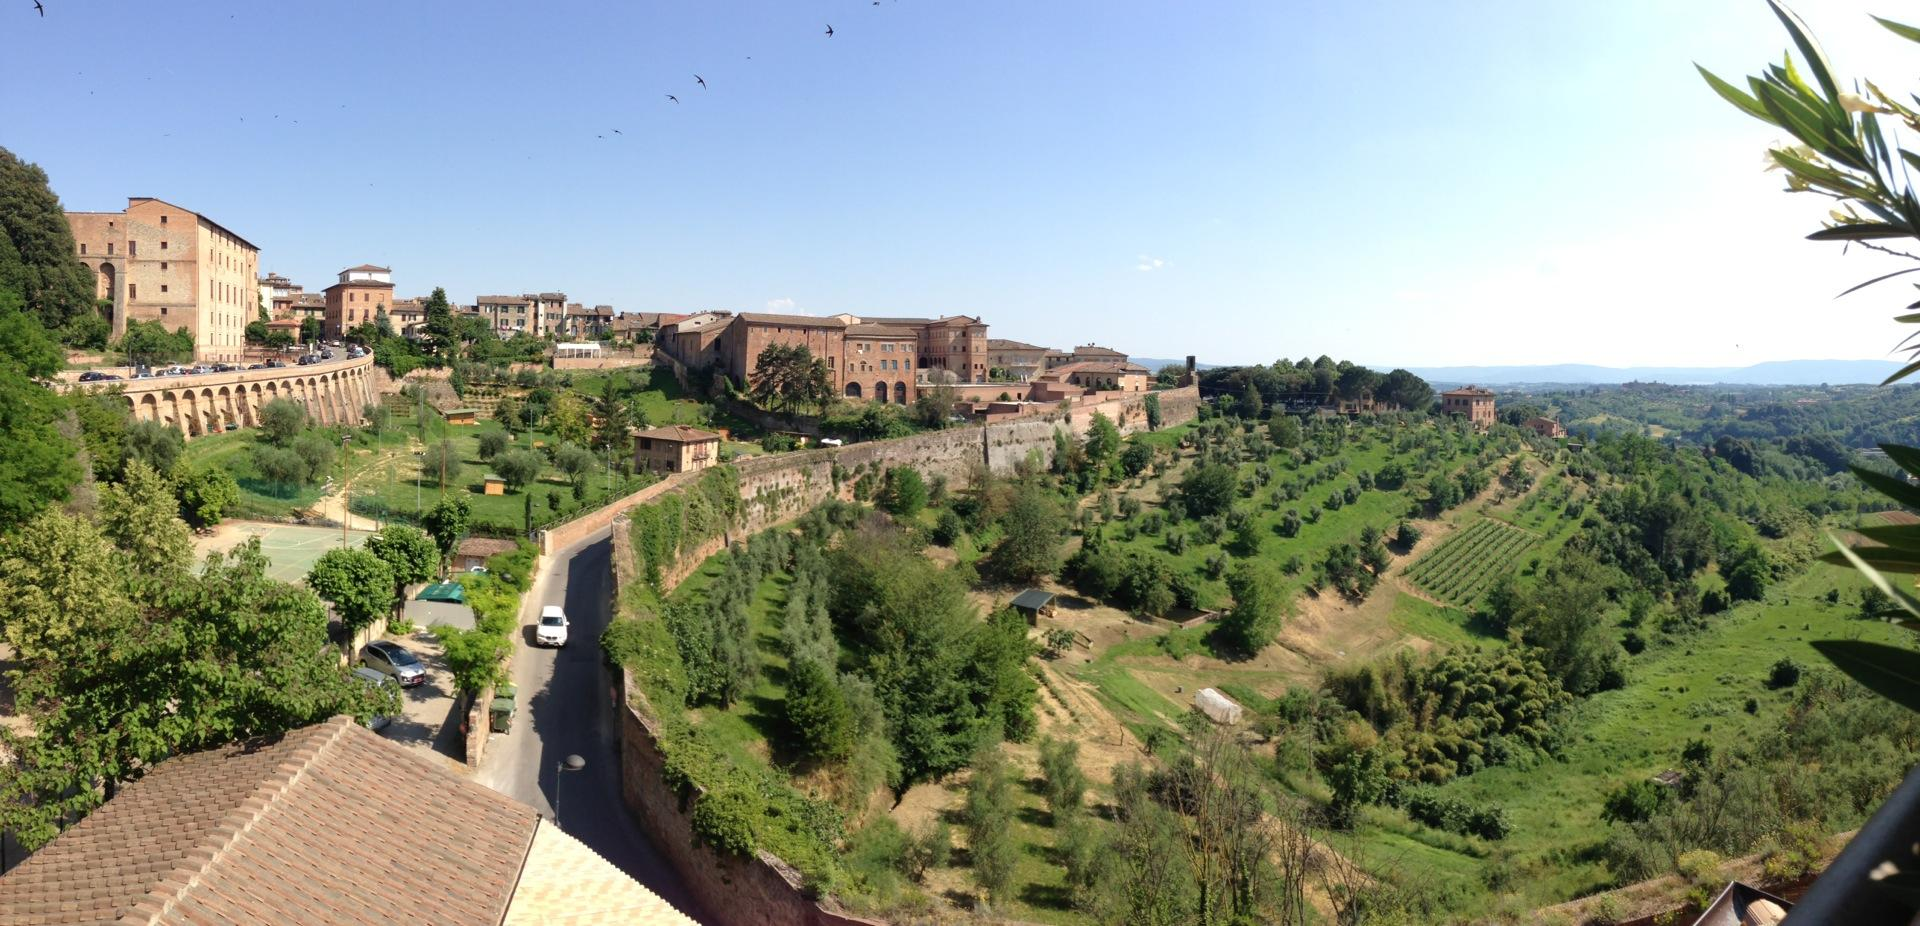 Reasons to eat out in Siena - Hotel Athena Siena